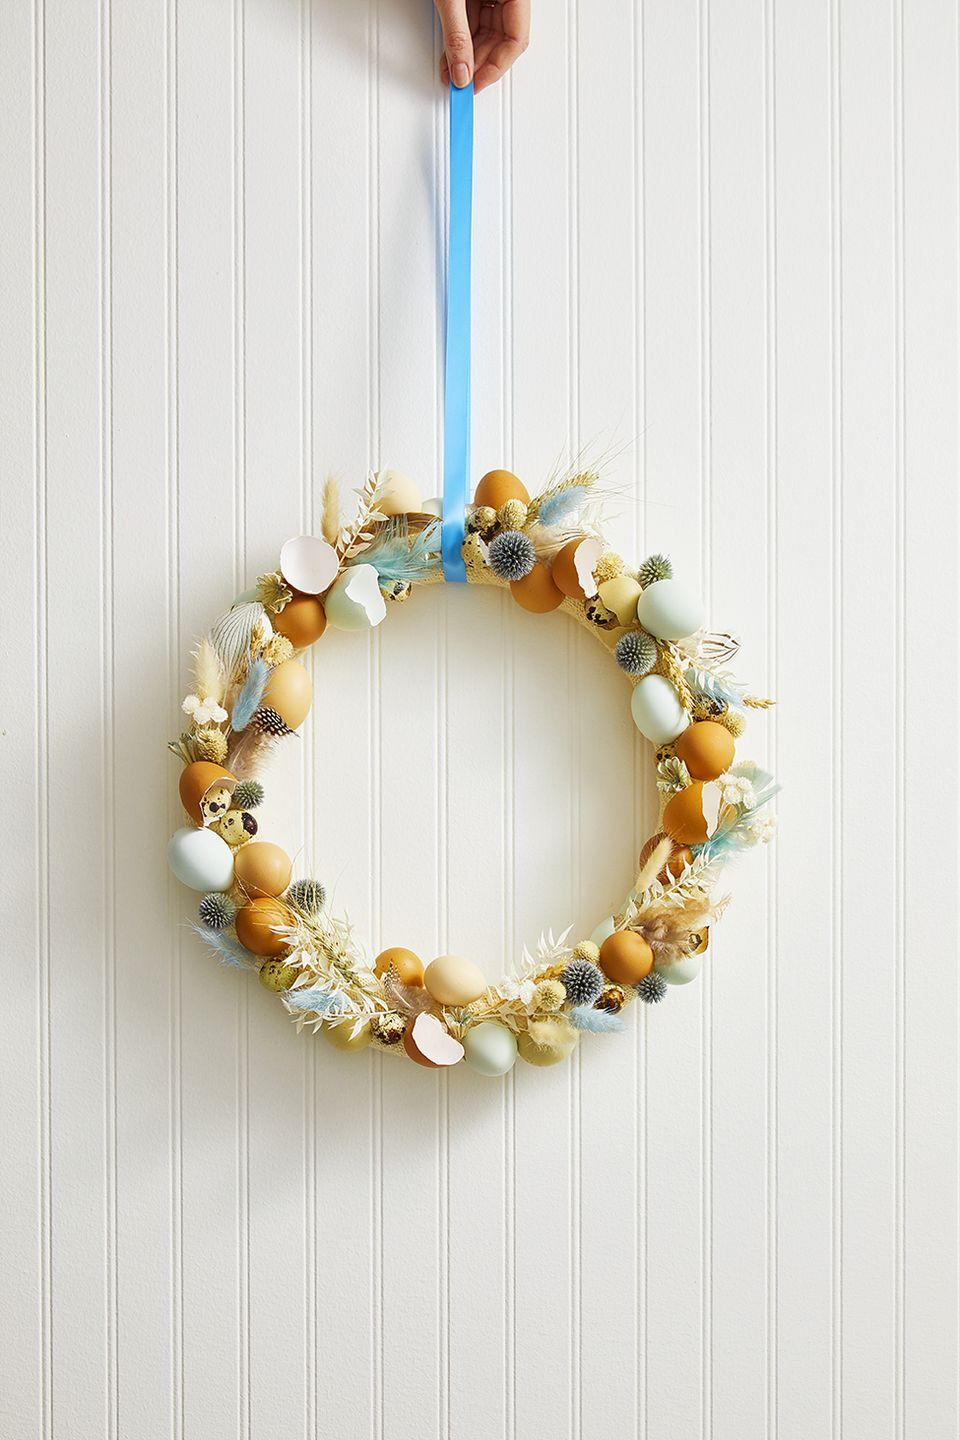 <p>To welcome guests in the sweetest way, wrap a foam wreath form with burlap. Use a hot glue to attach blown out eggs, broken egg shells, quail eggs, feathers, dried leaves and flowers to the wreath, overlapping until the entire form is covered.</p>